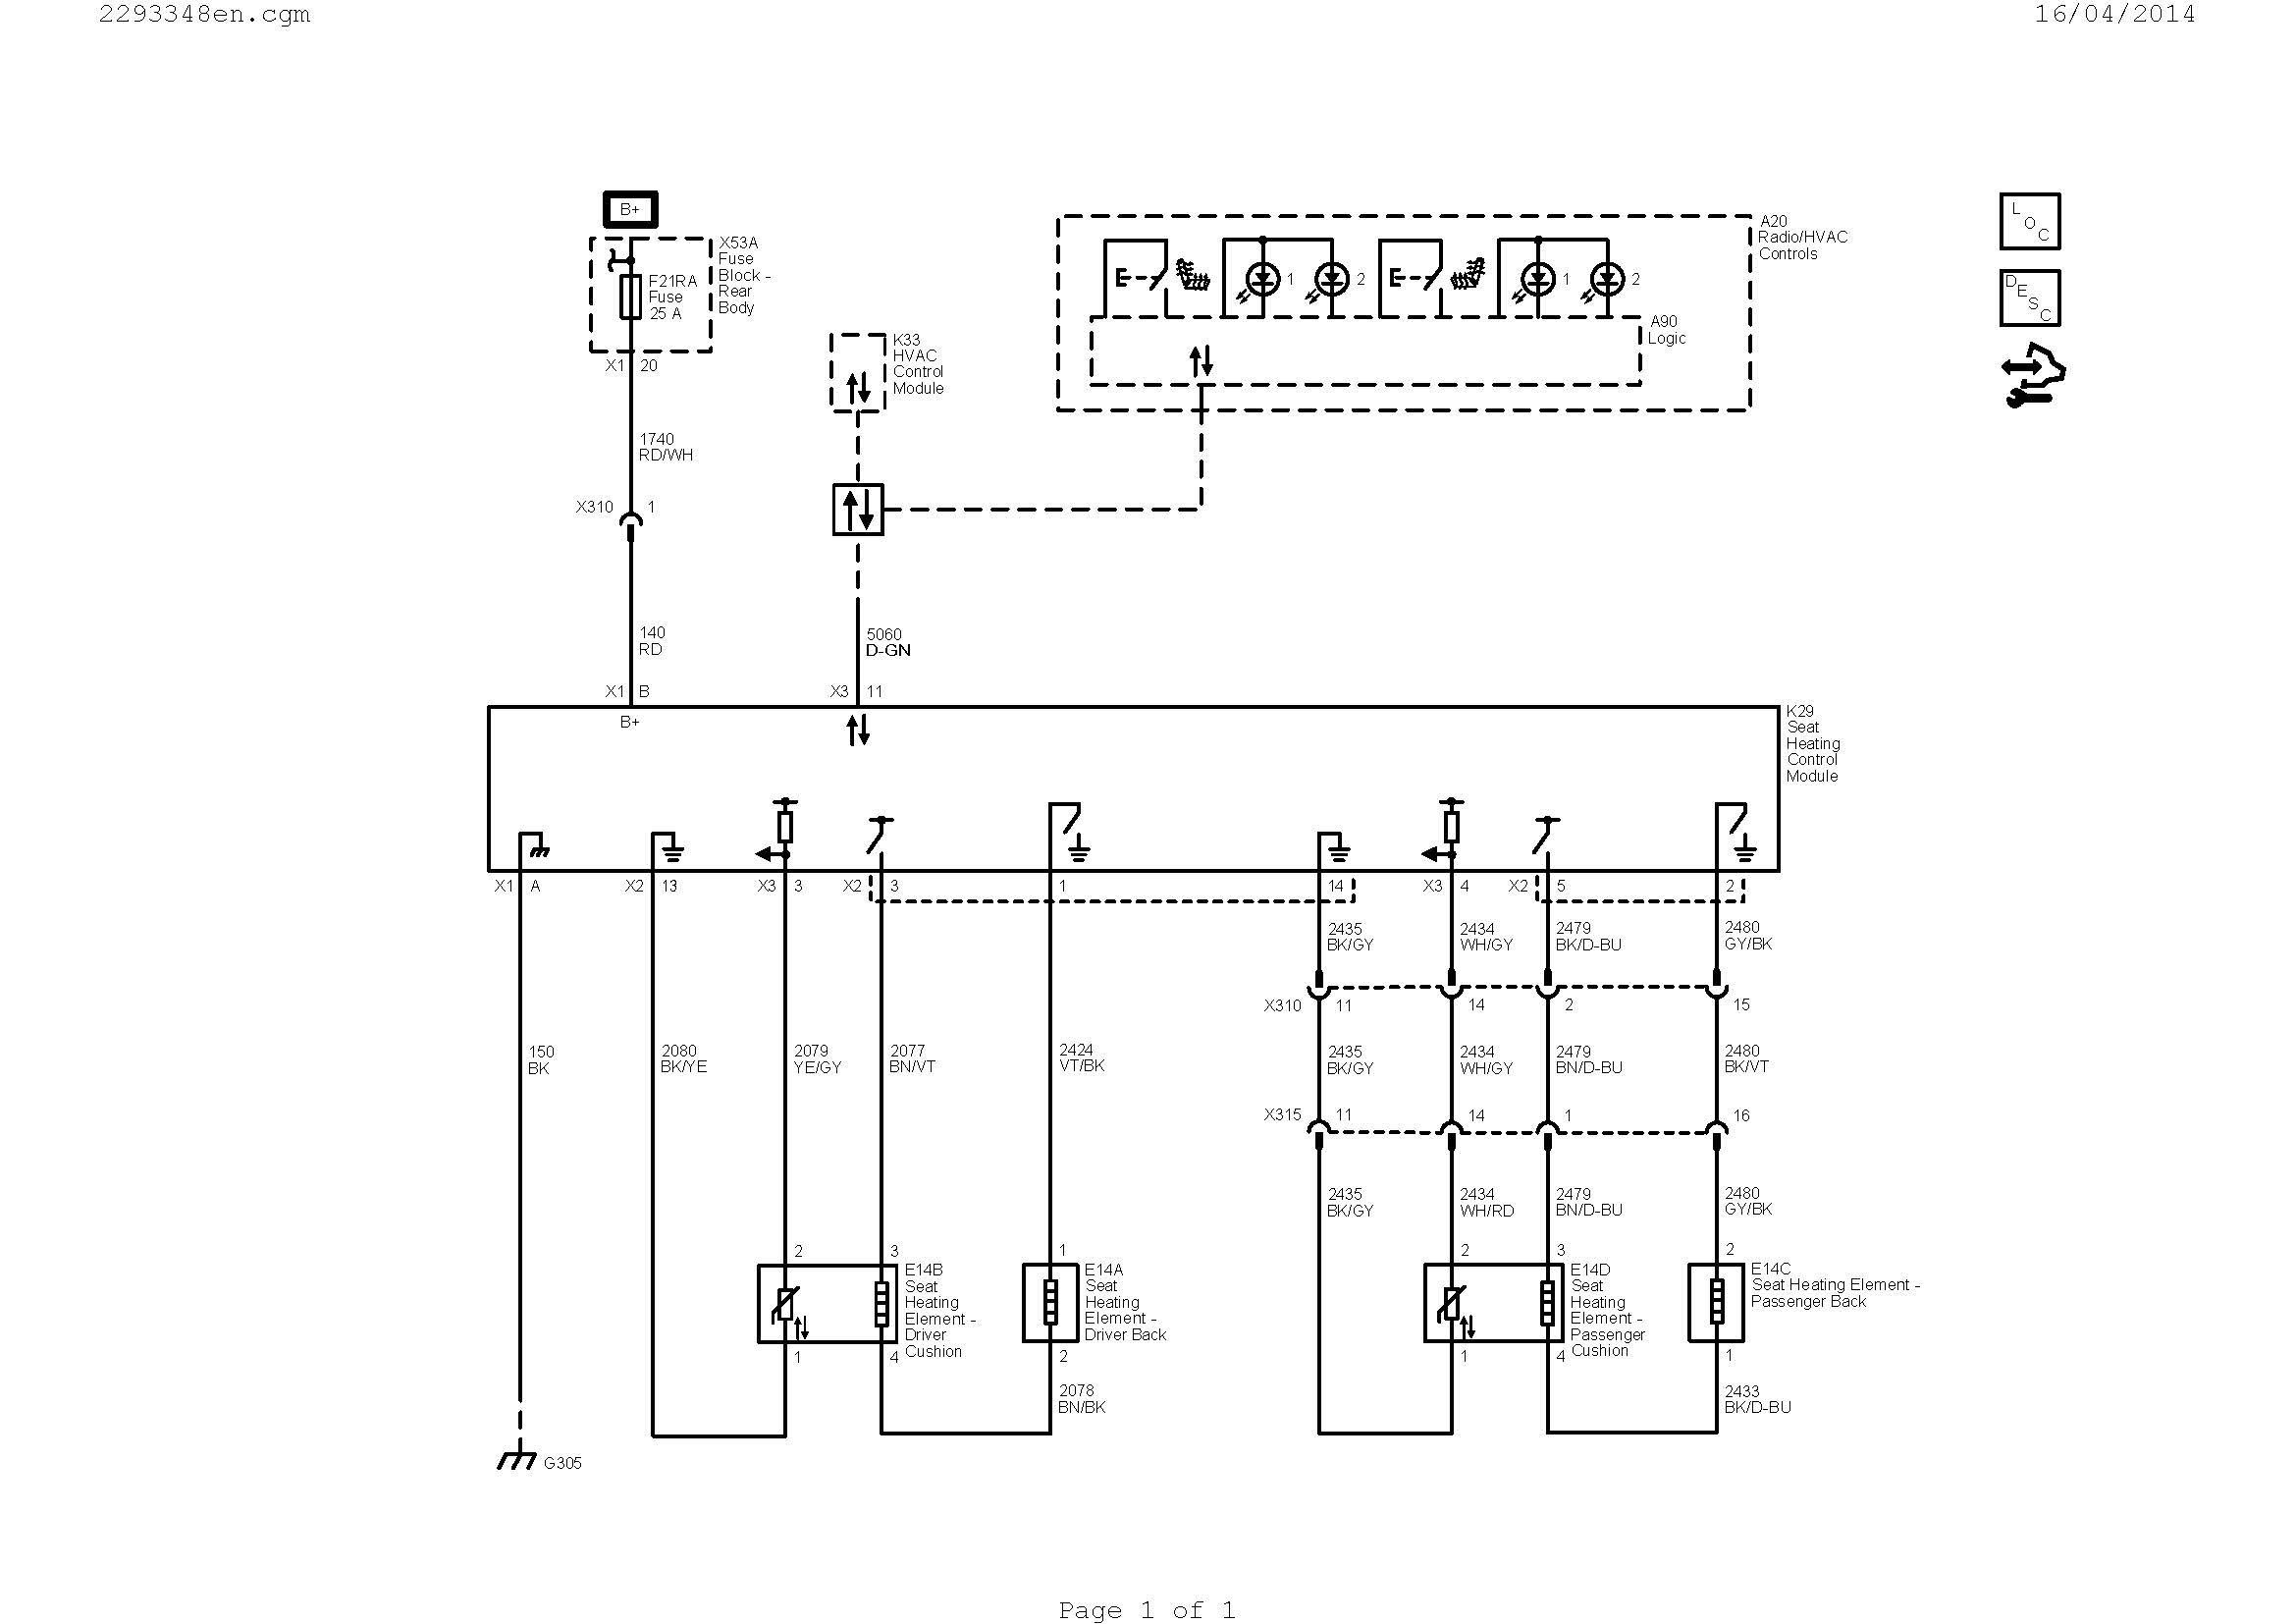 Semi Truck Suspension Diagram Wiring Diagram Aixam 741 Archives Page 3 Of 3 Joescablecar Of Semi Truck Suspension Diagram